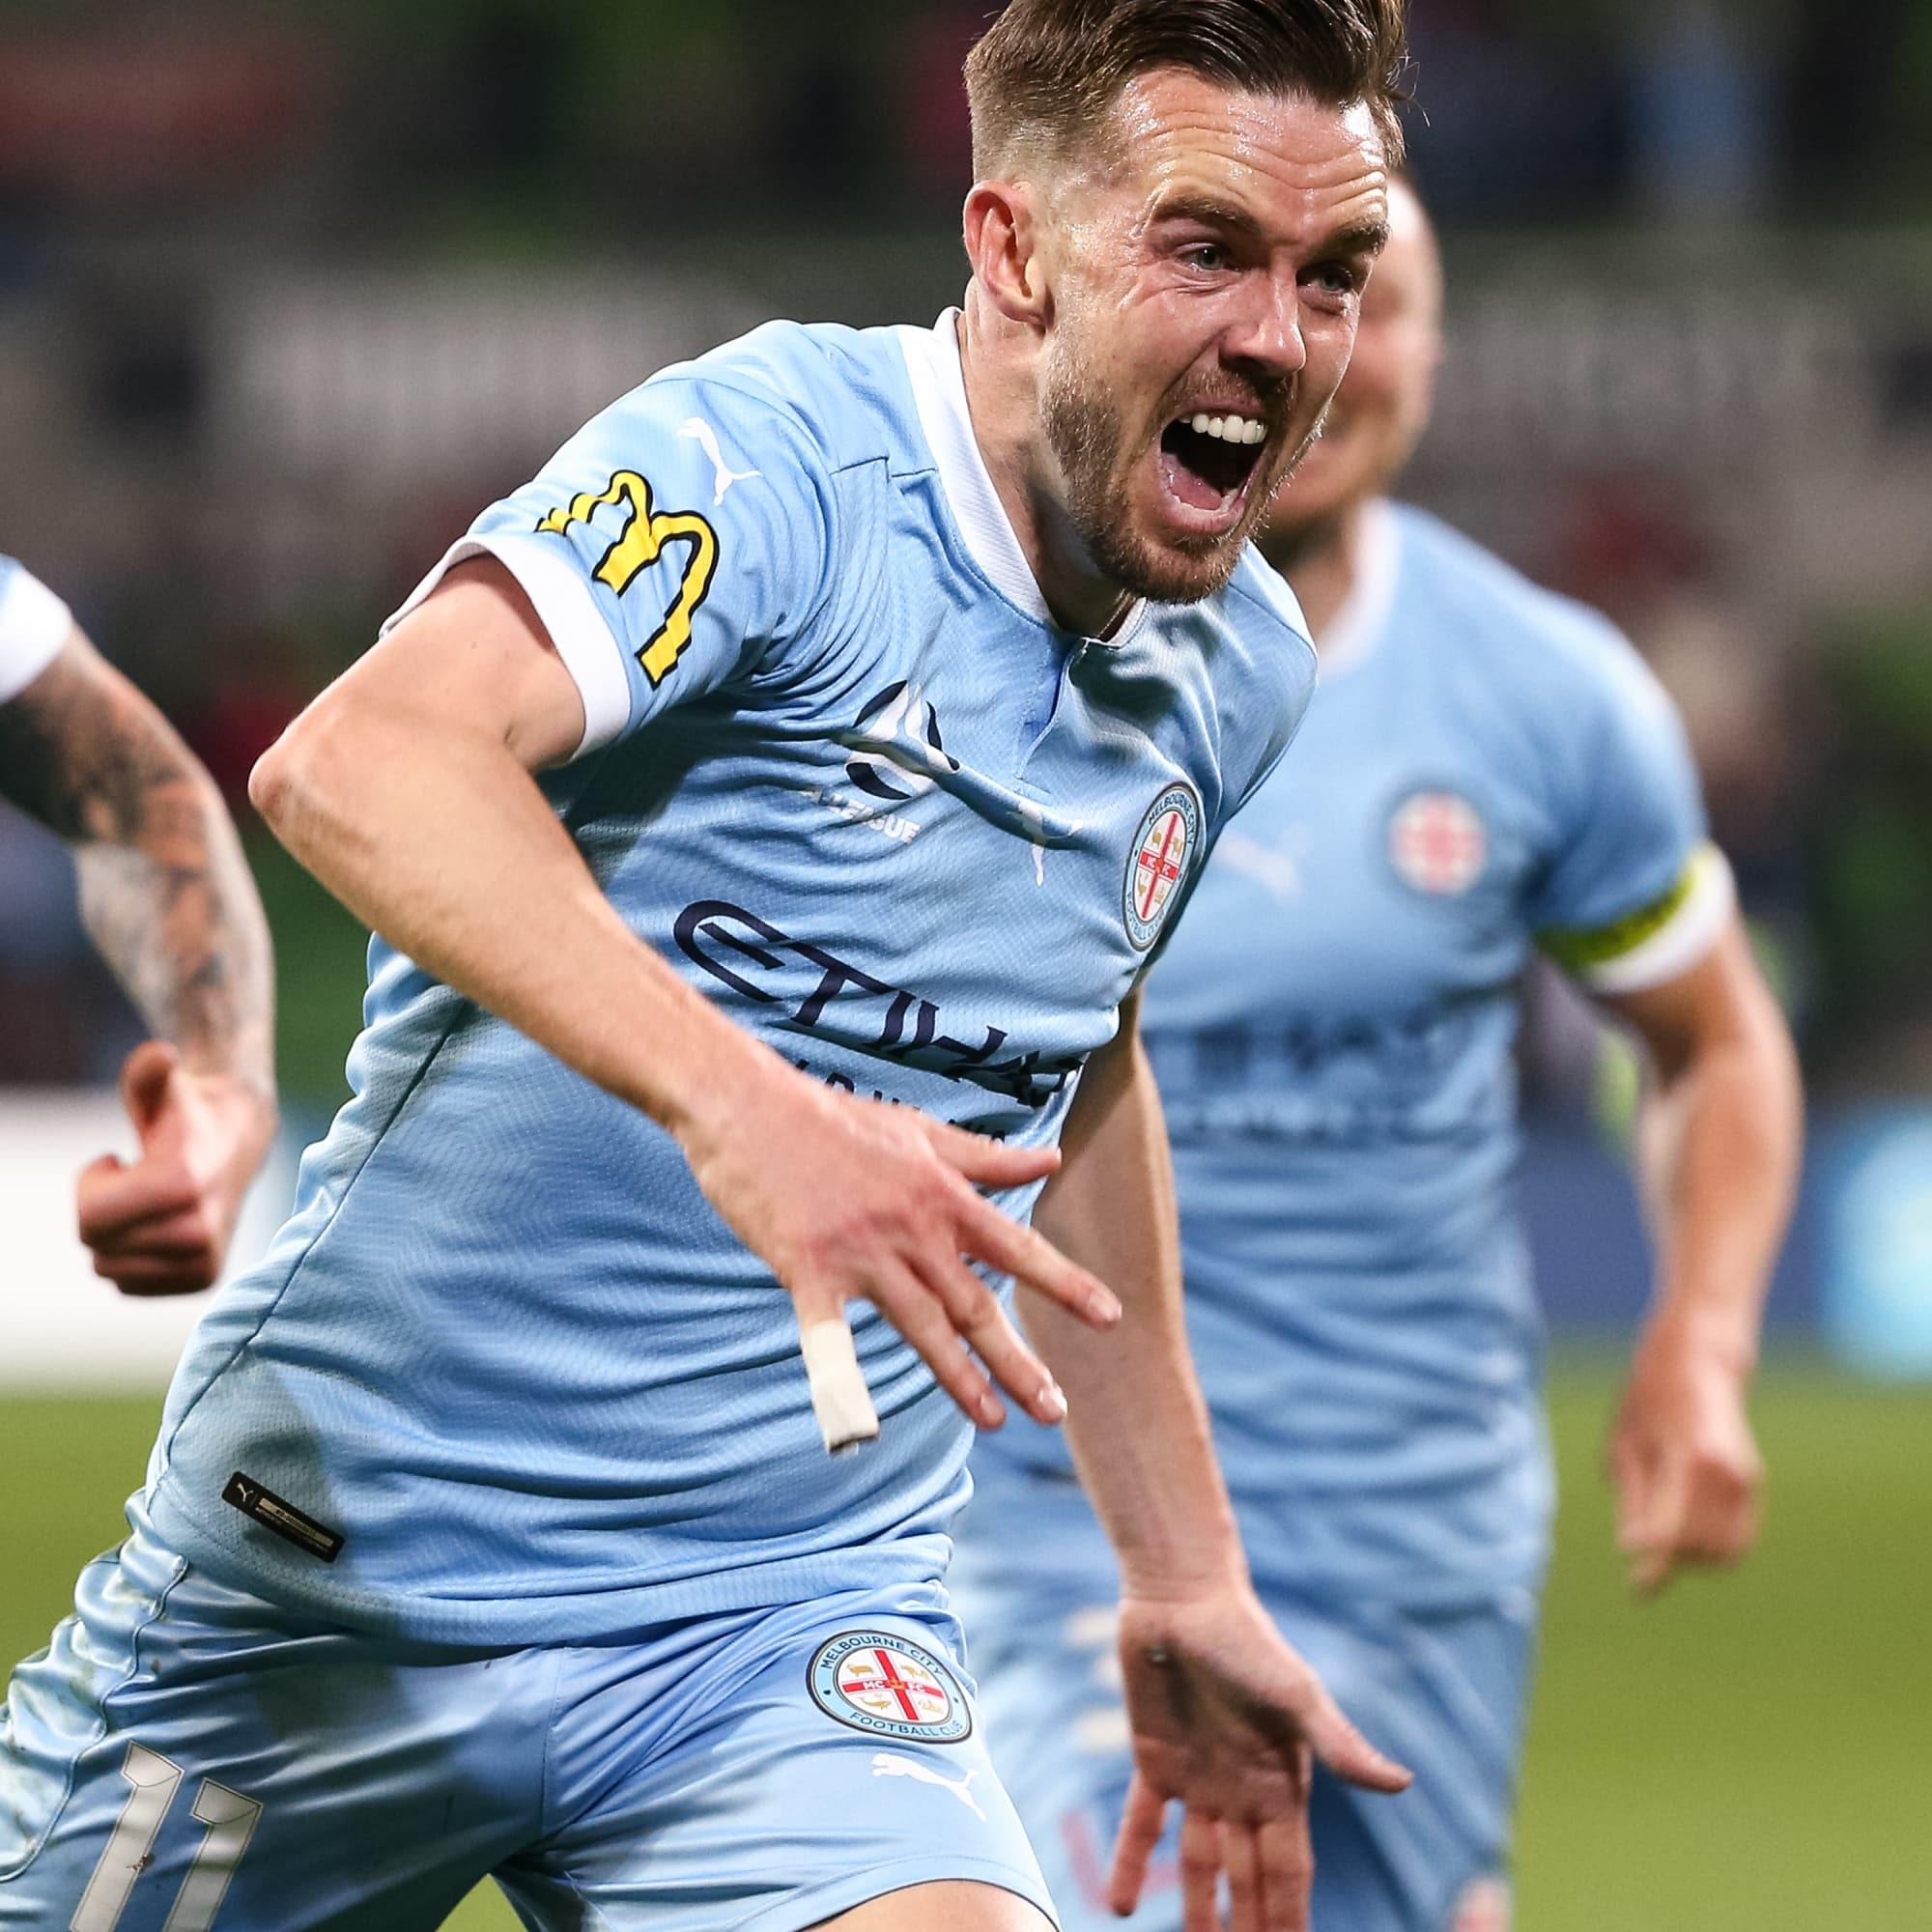 MELBOURNE, AUSTRALIA - MAY 22: Craig Noone of Melbourne City celebrates after kicking what would turn out to be the match winning goal during the Hyundai A-League soccer match between Melbourne City FC and Central Coast Mariners on May 22, 2021 at AAMI Park in Melbourne, Australia. (Photo by Speed Media/Icon Sportswire)